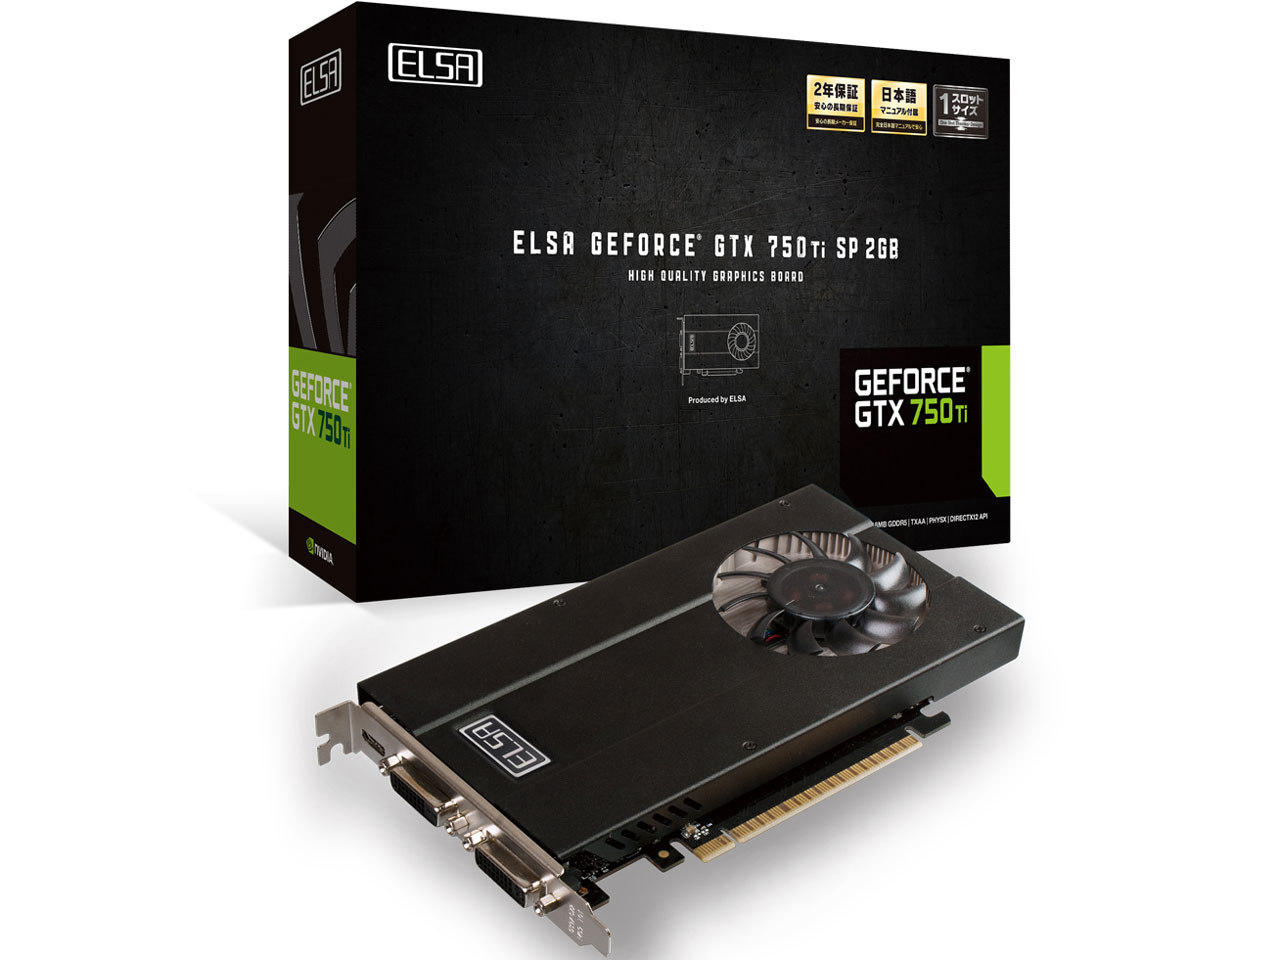 ELSA GeForce GTX 750 Ti SP 2GB GD750-2GERTSP [PCIExp 2GB] の製品画像